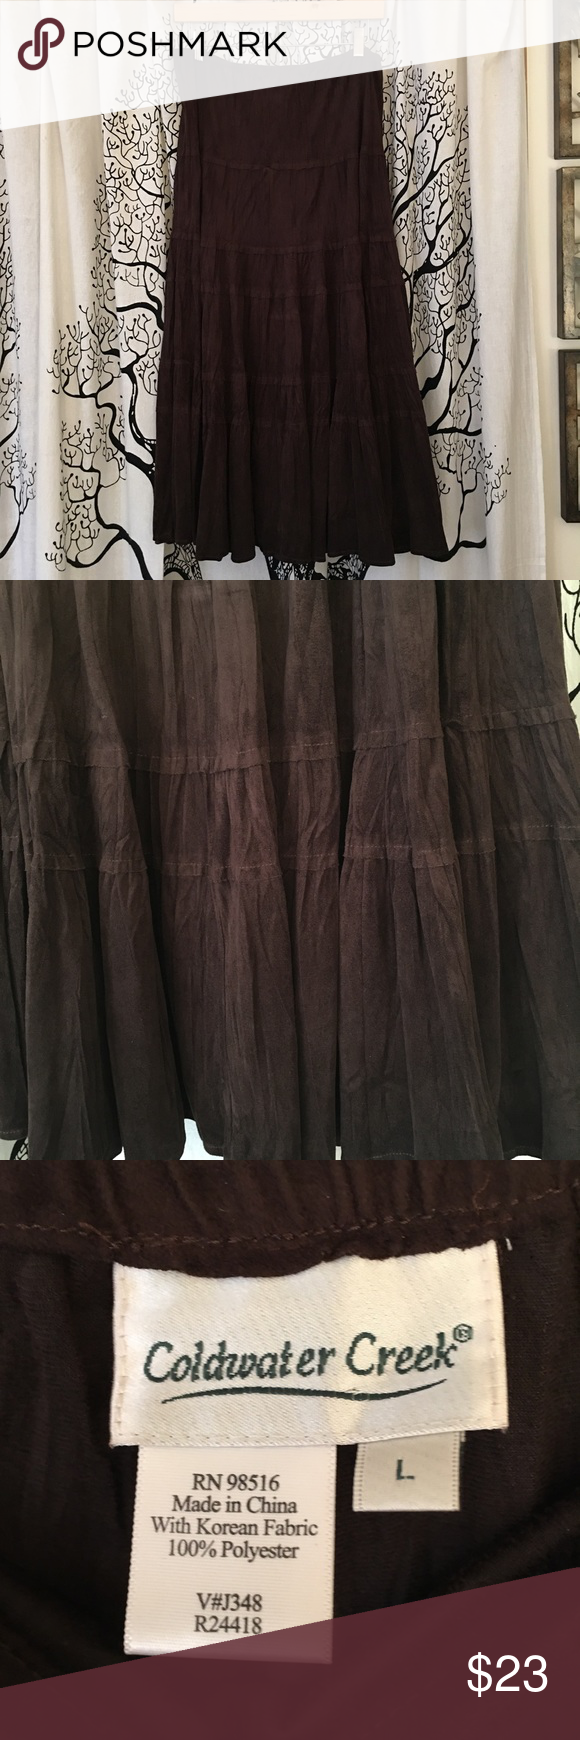 EUC Coldwater Creek Suede Tiered Maxi Skirt SZ L Gorgeous EUC Coldwater Creek tiered maxi skirt in chocolate brown suede. Elastic waistband. Super soft and comfortable! SZ L. Coldwater Creek Skirts Maxi